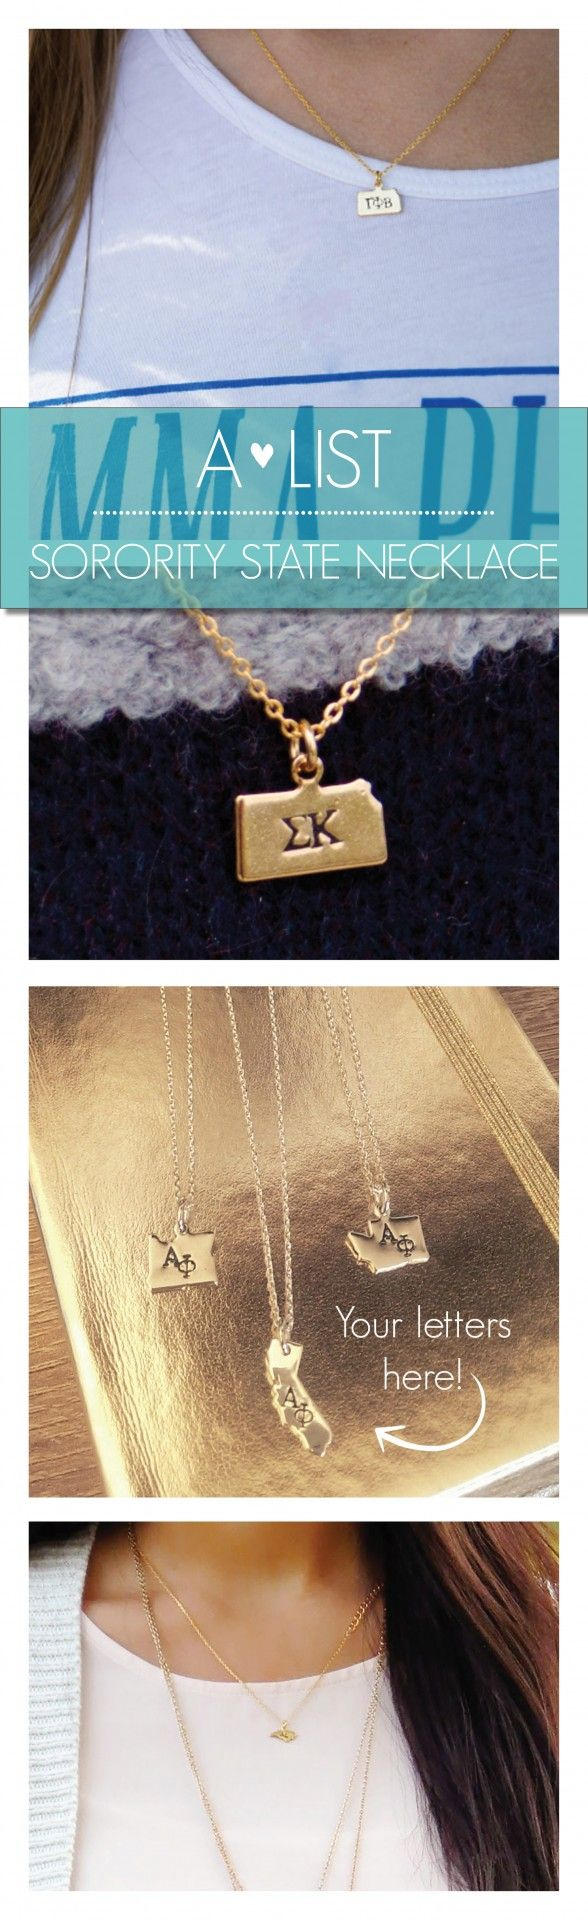 Get in the right State of mind with these cute Sorority State Necklaces. Available in silver & gold at www.alistgreek.com. Makes a great initiation, bid day or big/little gift! #sorority